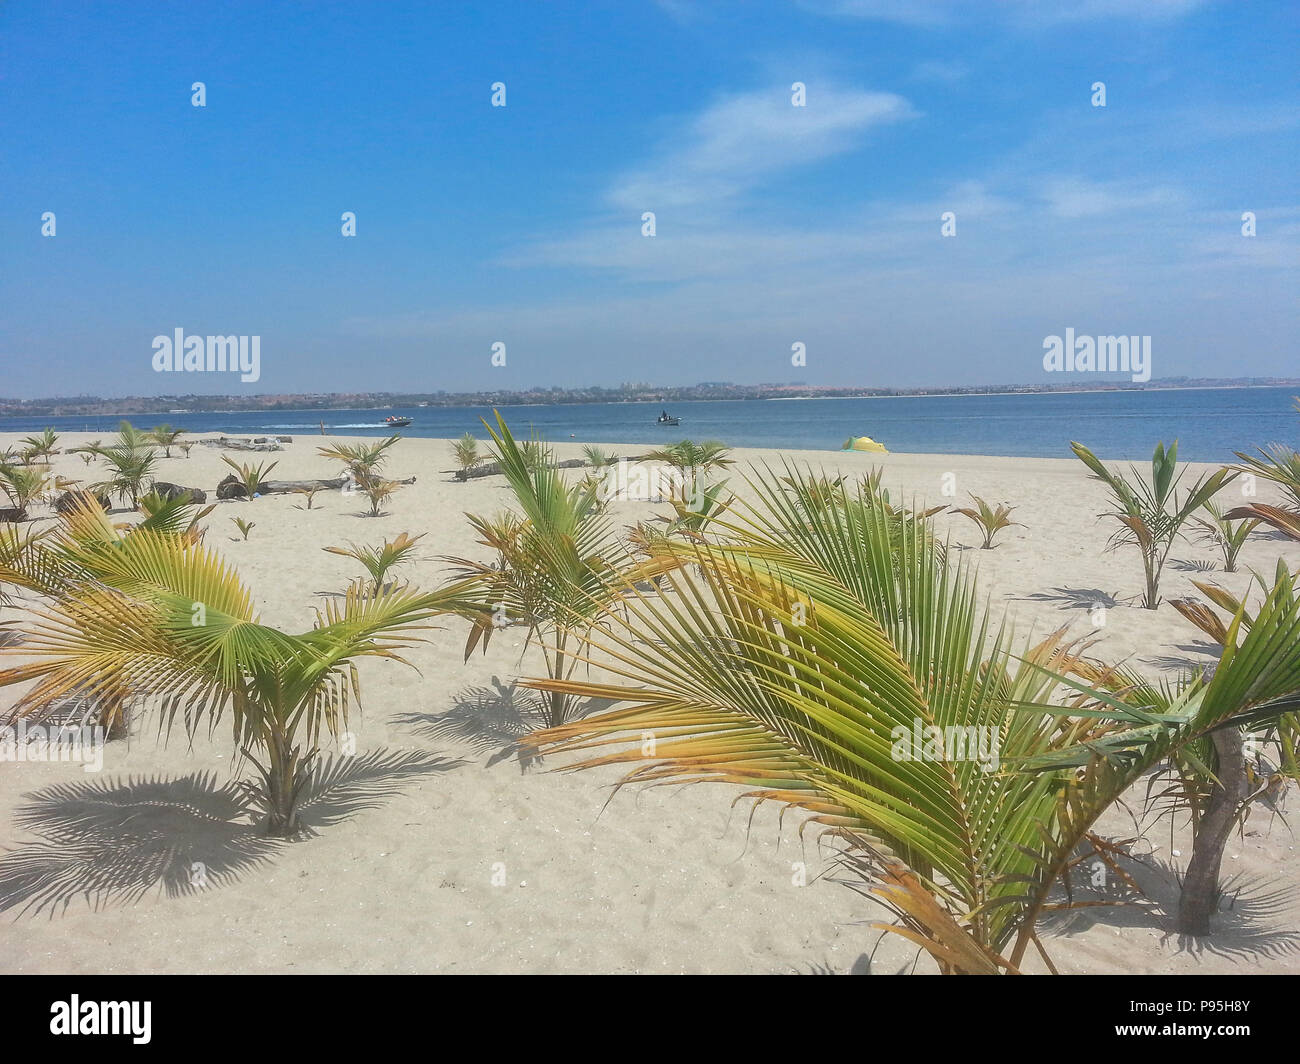 tropical beach with palm trees, sand, ocean water with a boat and blue sky, located on the island of Mussulo in Luanda, Angola - Stock Image